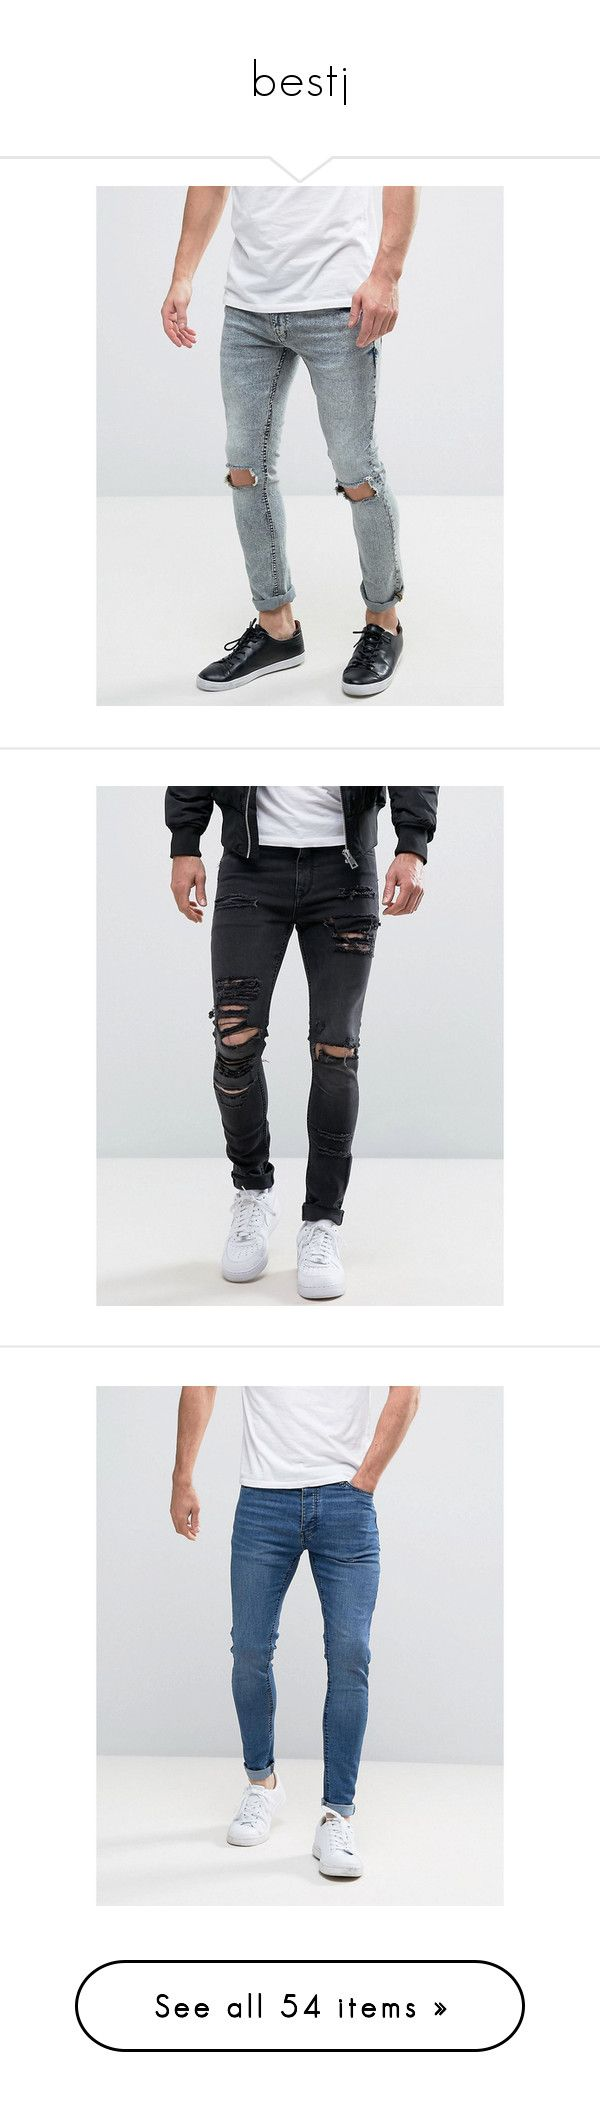 """""""bestj"""" by mamtadubey ❤ liked on Polyvore featuring men's fashion, men's clothing, men's jeans, blue, mens flap pocket jeans, mens distressed skinny jeans, mens acid wash jeans, tall mens jeans, mens acid wash skinny jeans and black"""